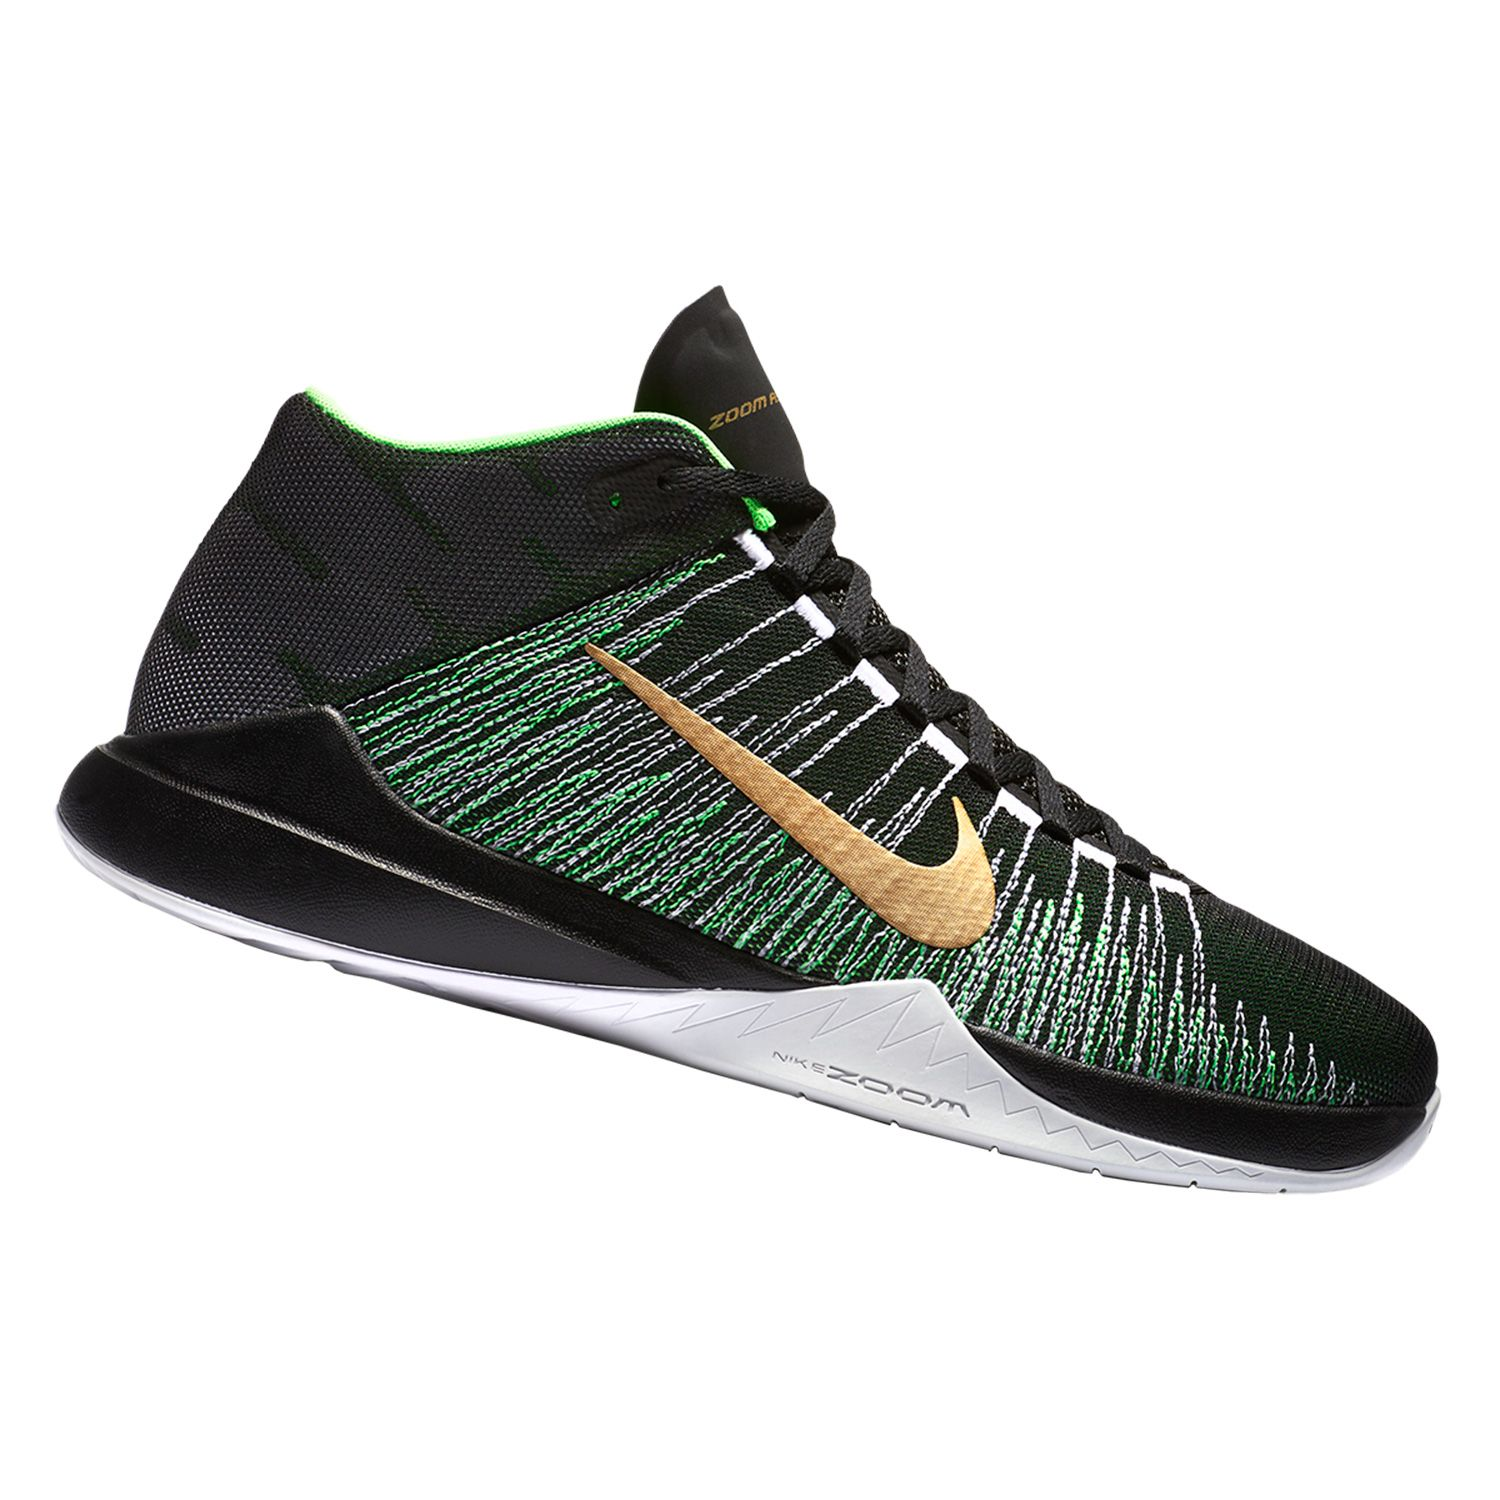 the best attitude 85100 dcc27 ... promo code for nike zoom ascention mens basketball shoes 77a8a d6fa6